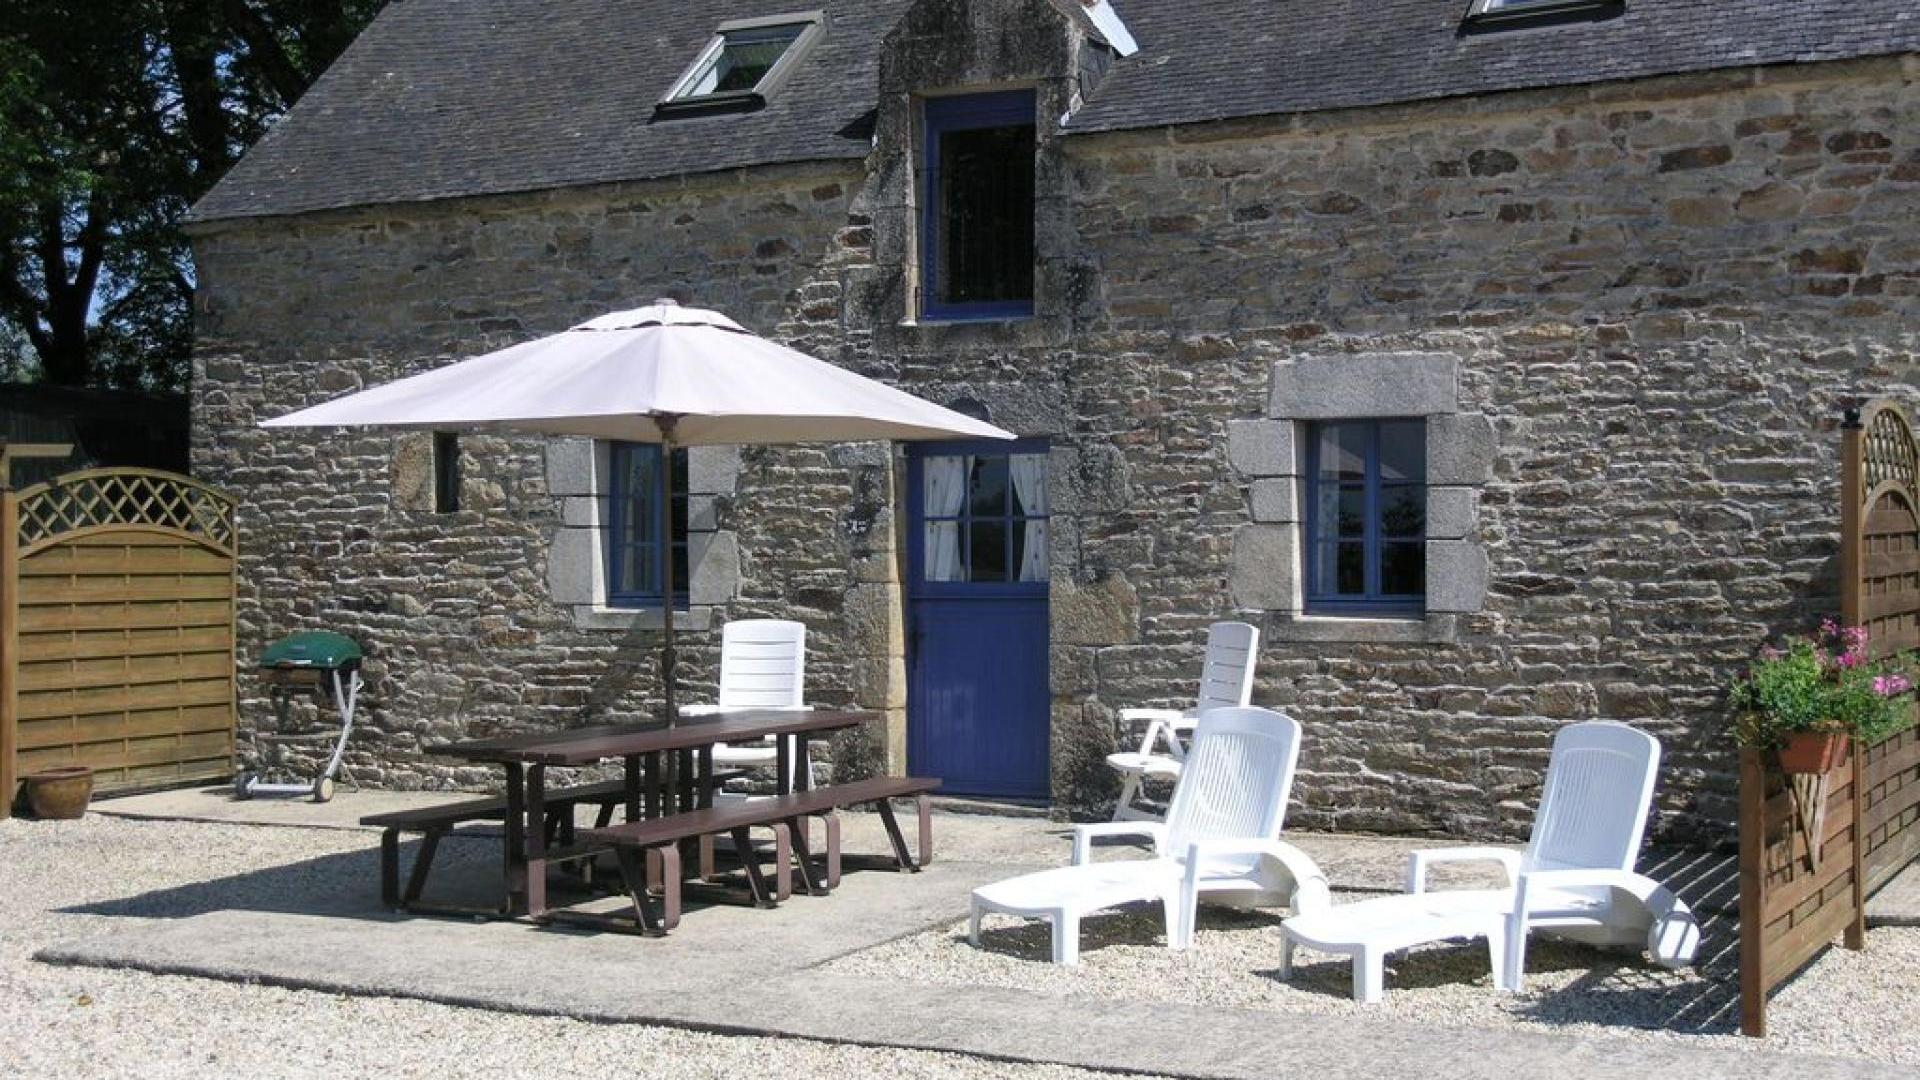 3 Bedroom Gite complex in Brittany, France